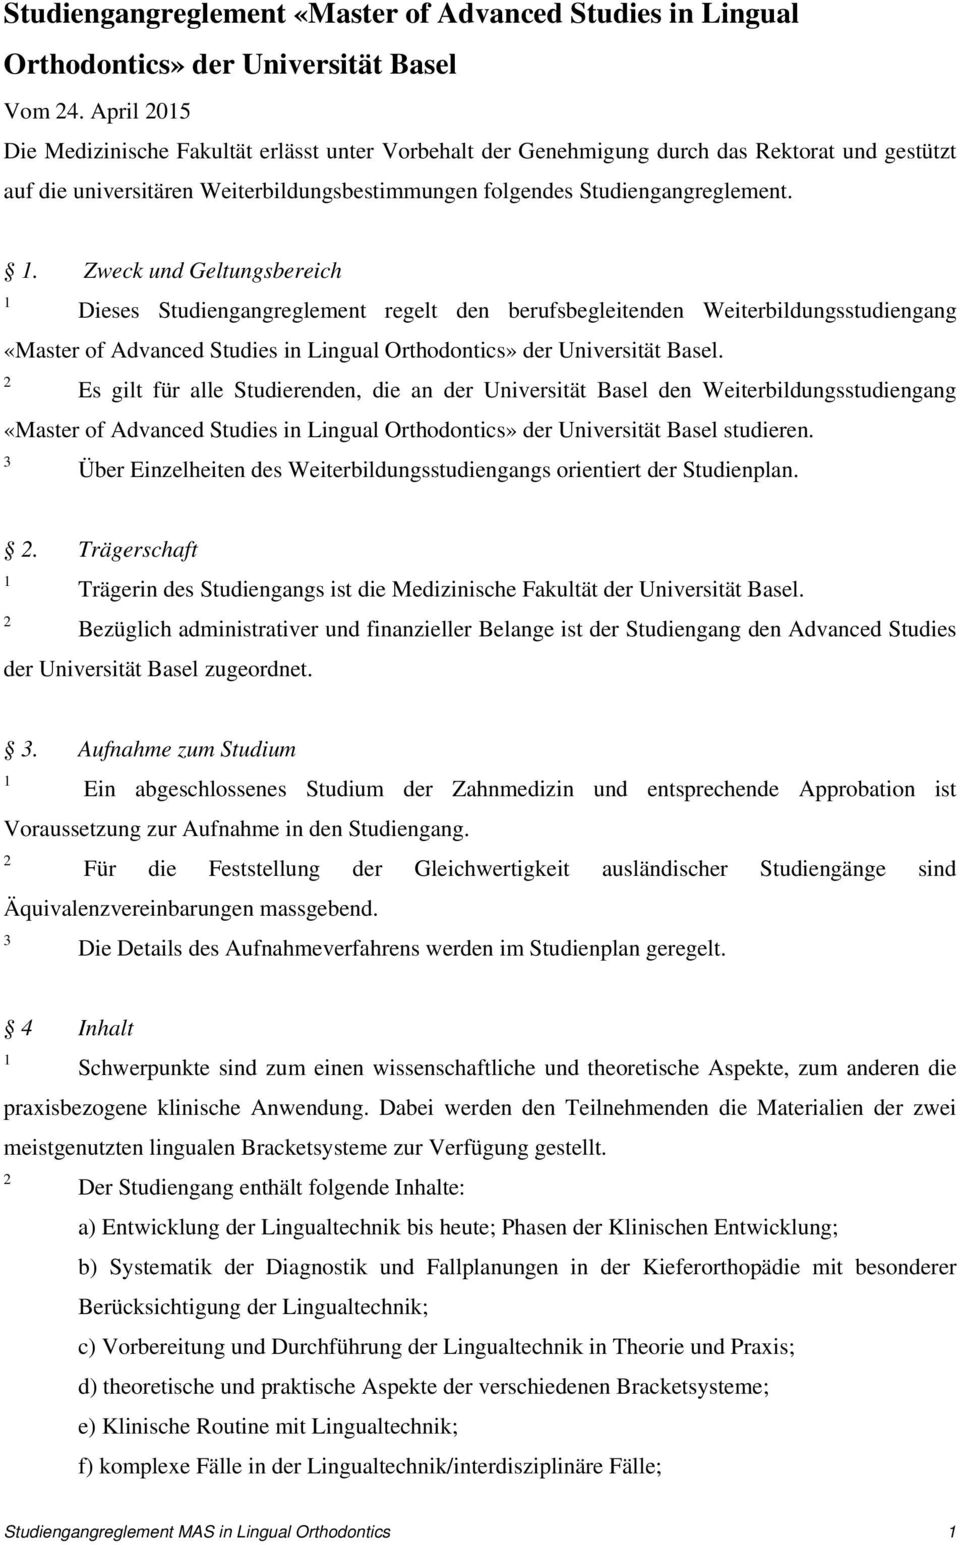 . Zweck und Geltungsbereich Dieses Studiengangreglement regelt den berufsbegleitenden Weiterbildungsstudiengang «Master of Advanced Studies in Lingual Orthodontics» der Universität Basel.